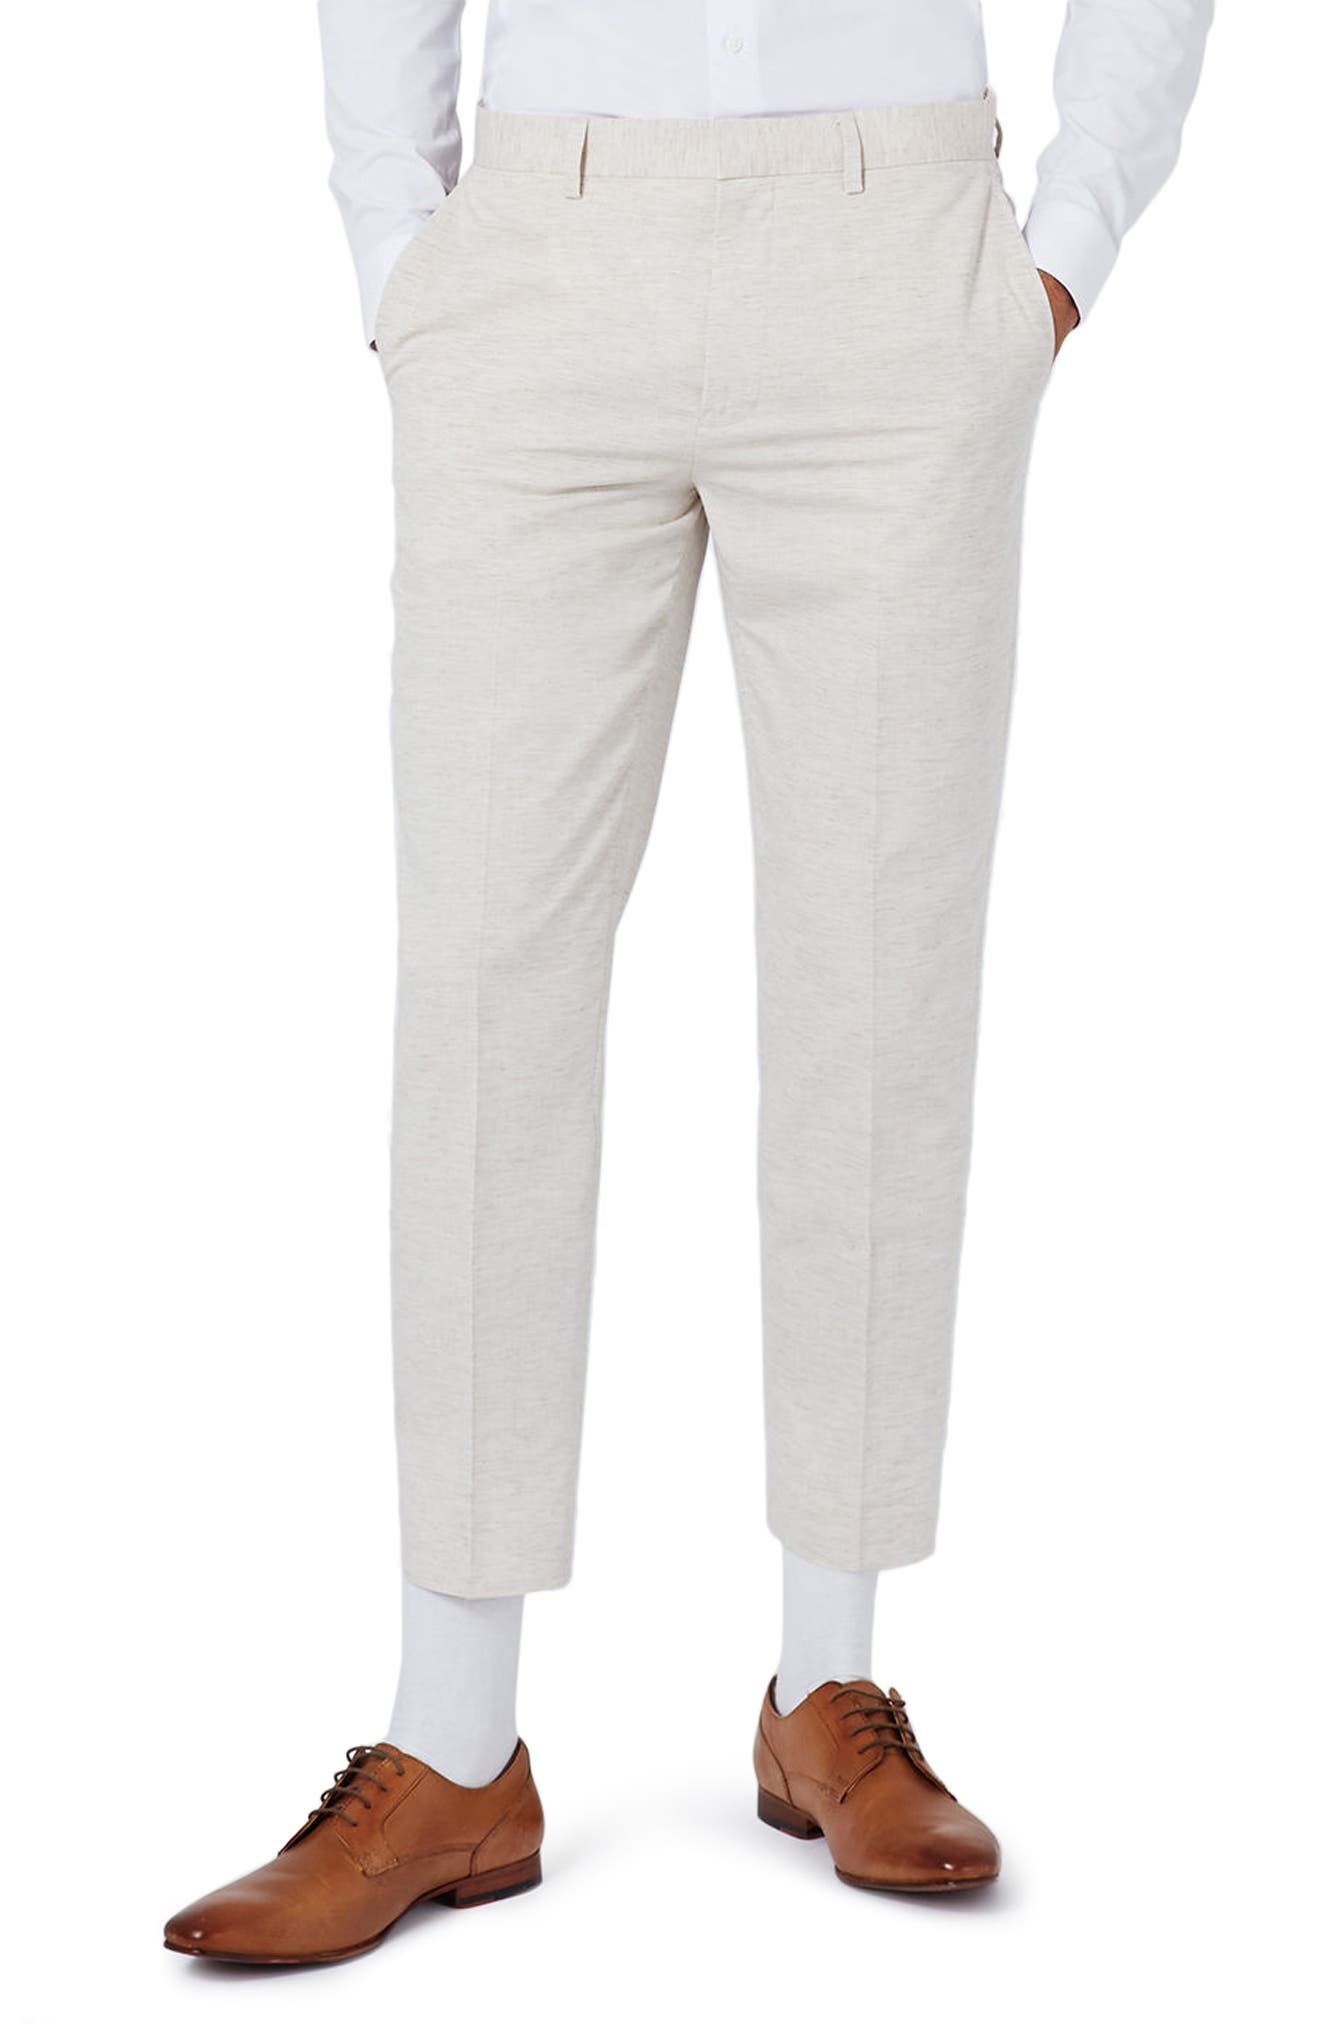 Topman Skinny Fit Marled Suit Trousers